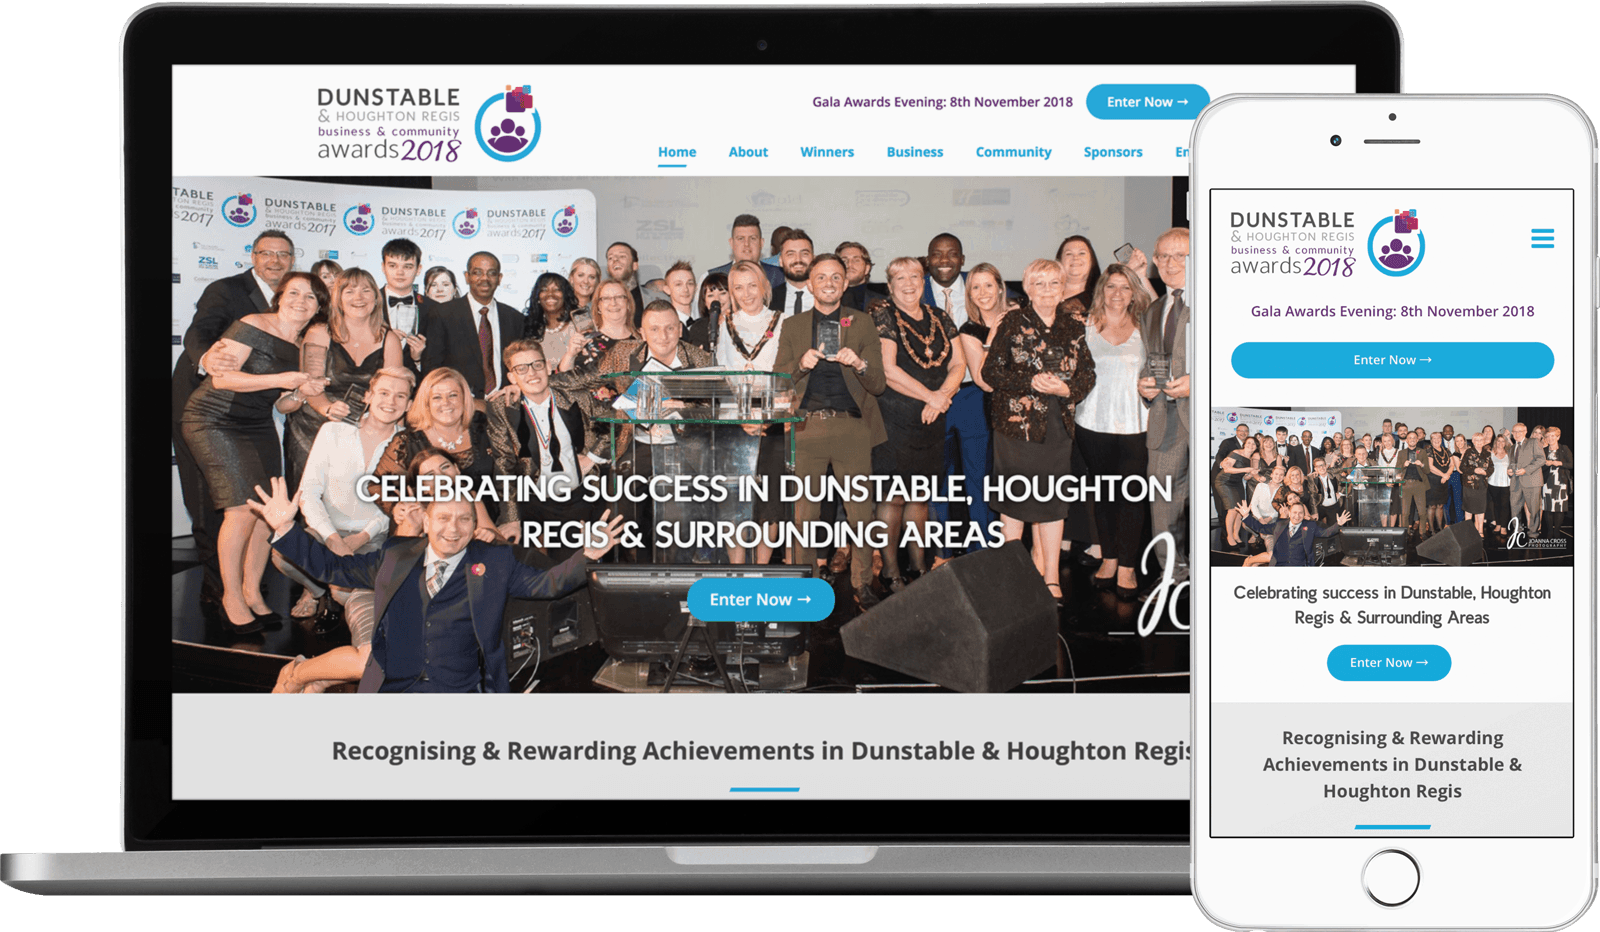 Macbook / iPhone view of Dunstable & Houghton Regis Business & Community Awards website